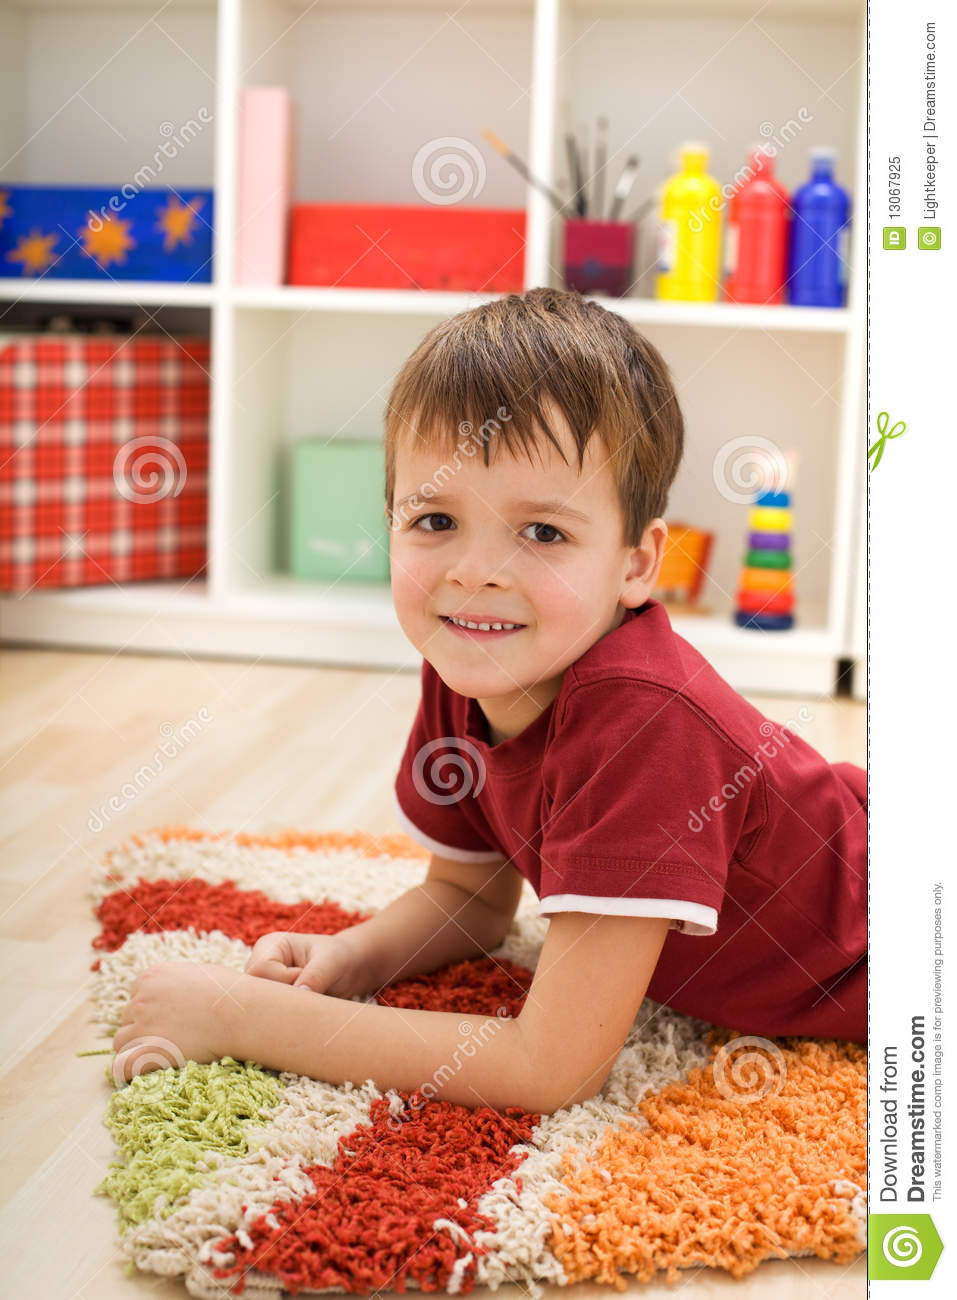 Boy In His Room Royalty Free Stock Photo Image 13067925